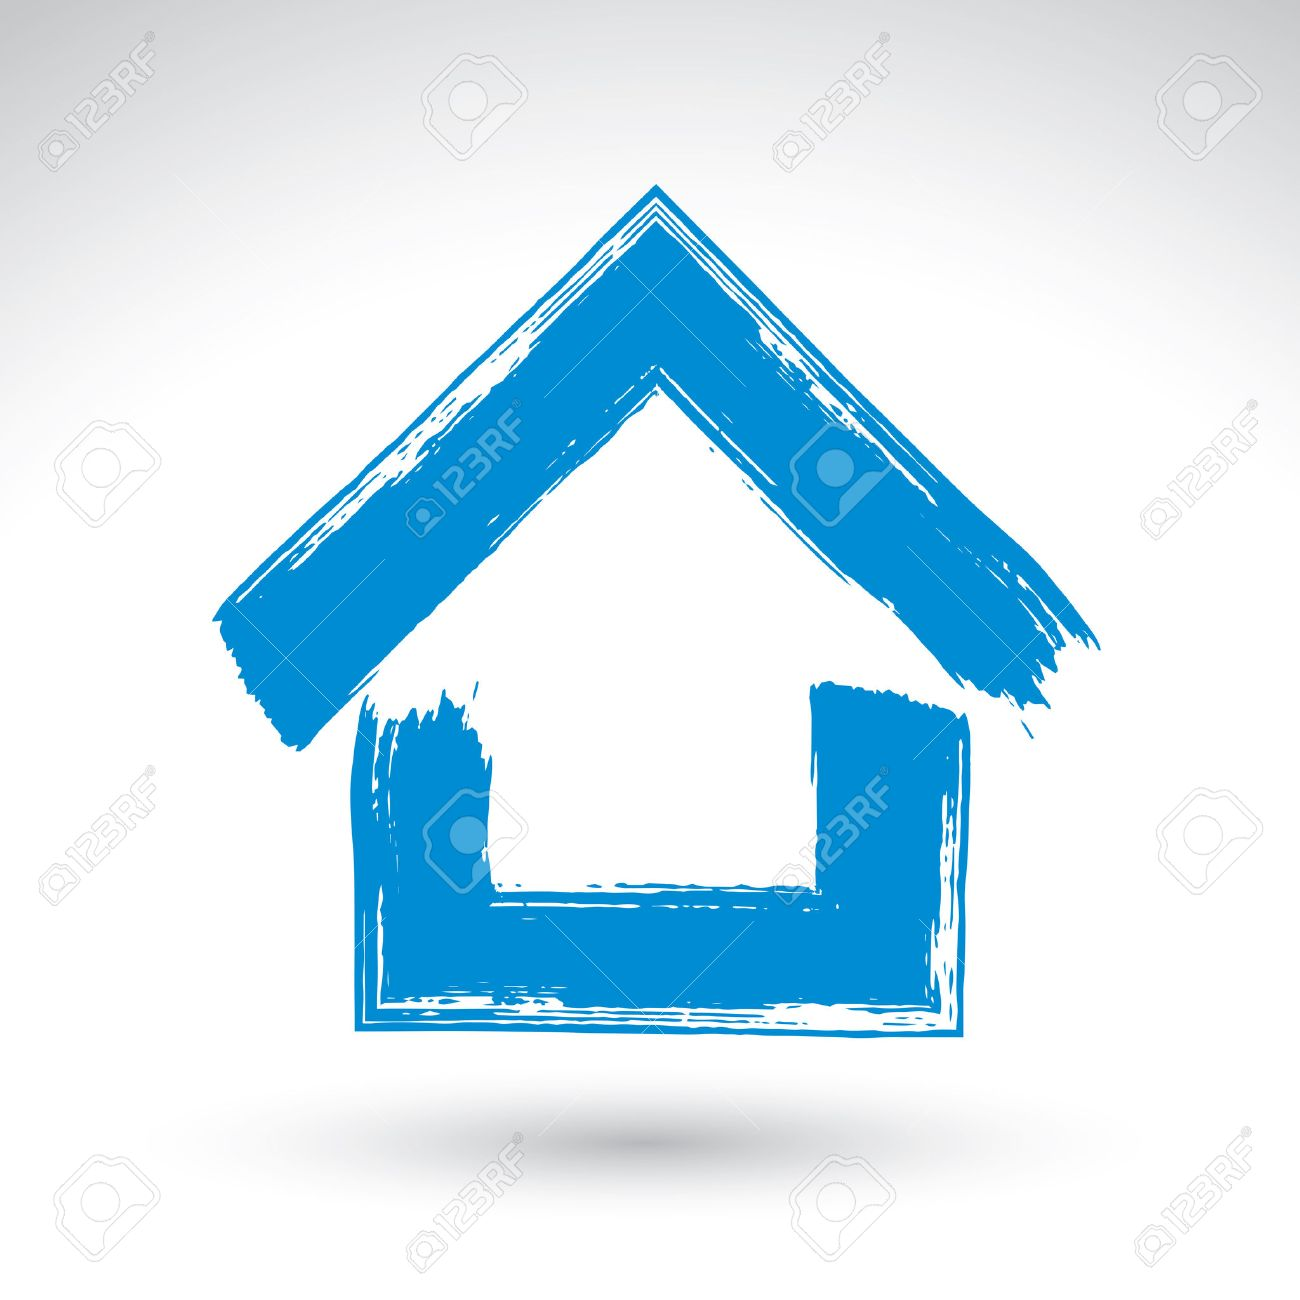 Hand drawn blue country house icon, estate logotype, brush drawing simple cottage sign, hand-painted house symbol isolated on white background. Stock Vector - 33619936